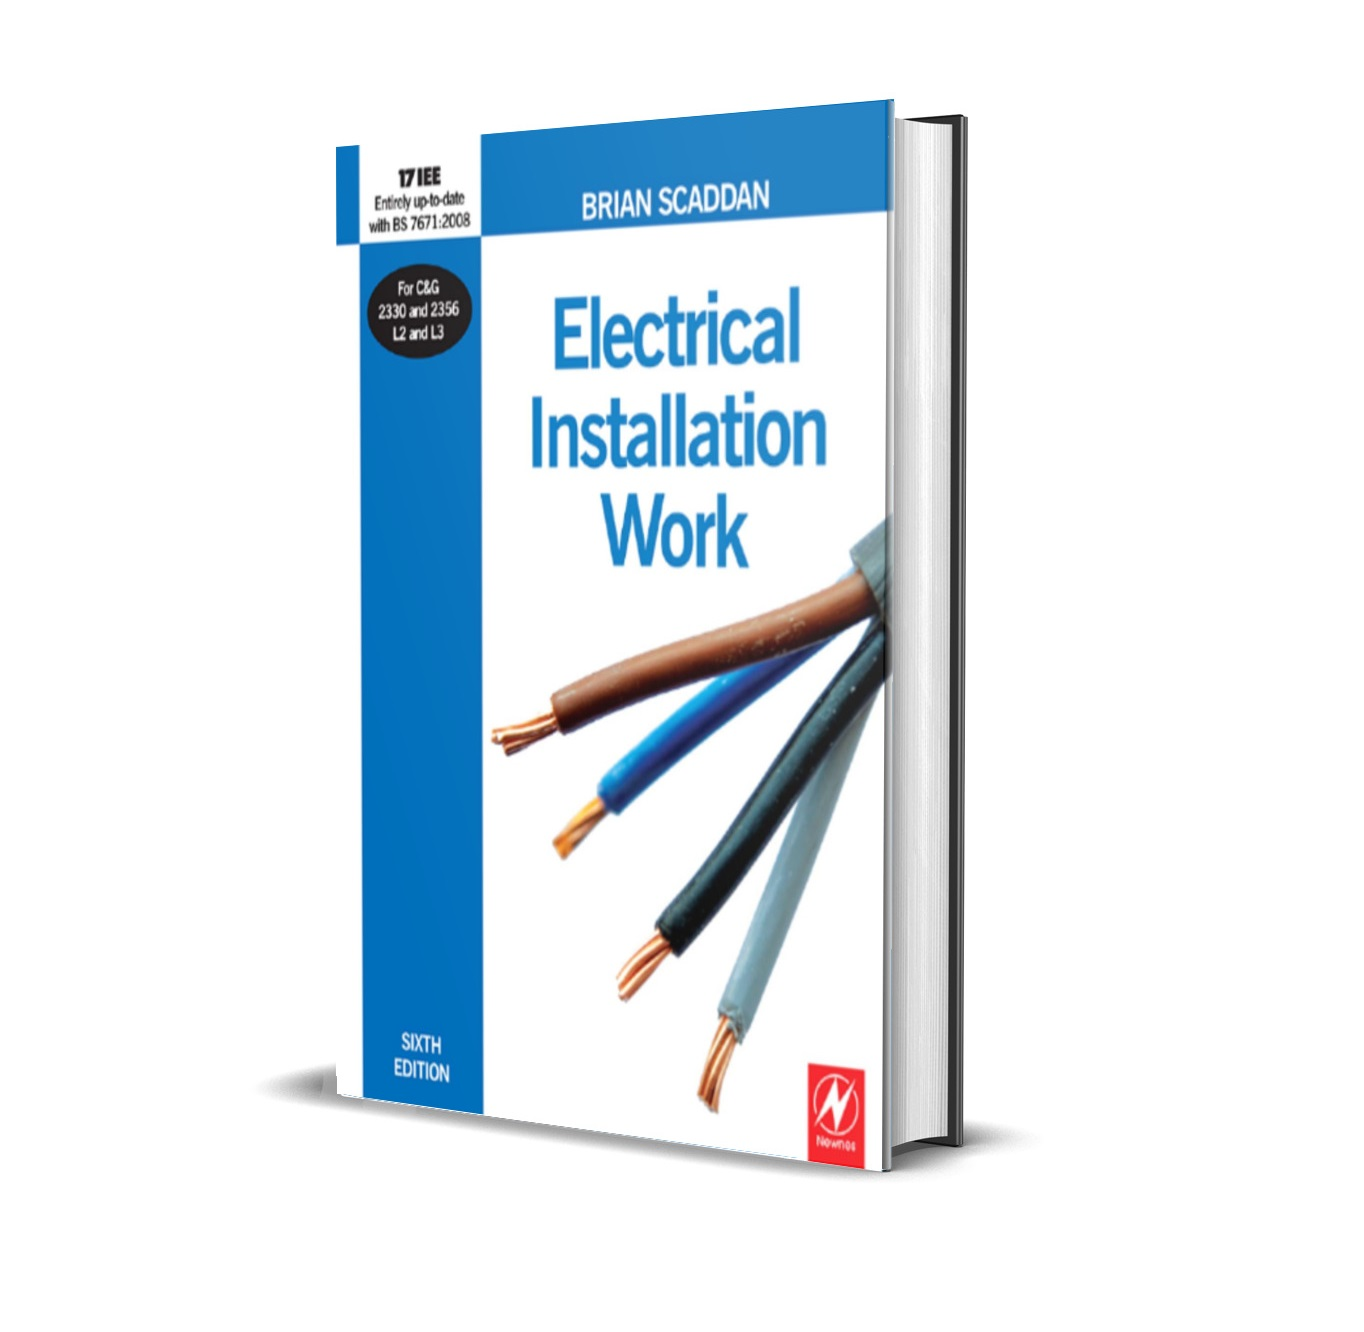 Electrical Installation Work - 6th Edition